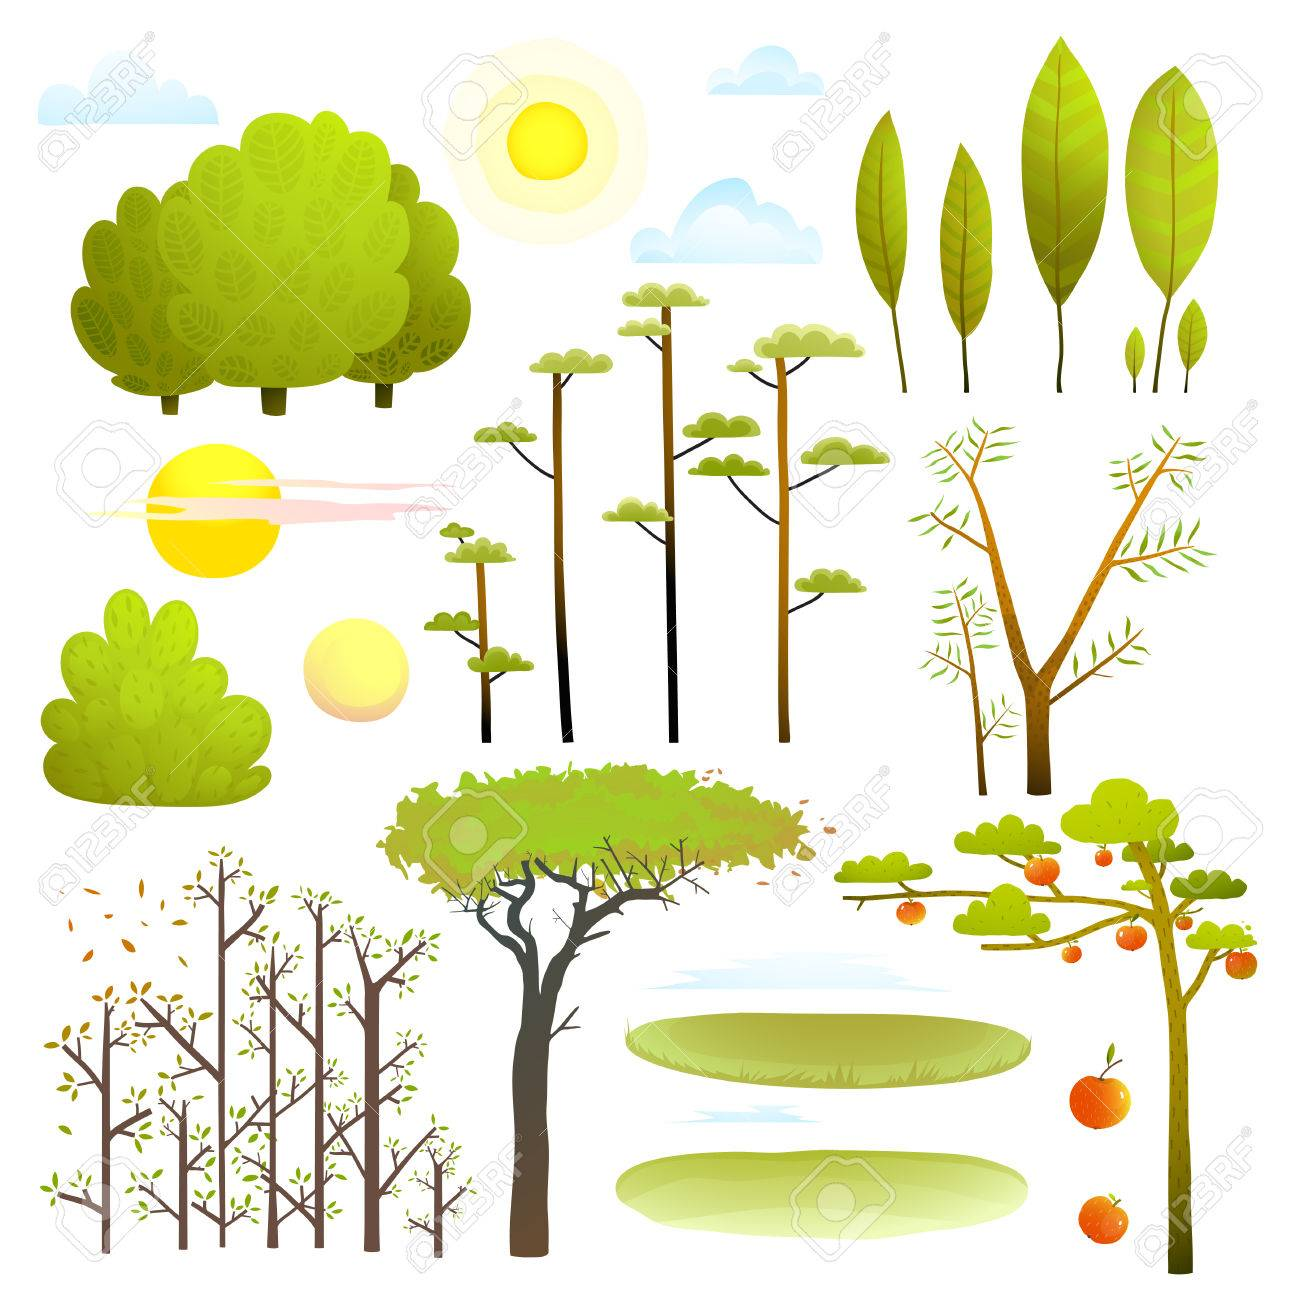 Trees nature landscape objects clip art collection - 74486458